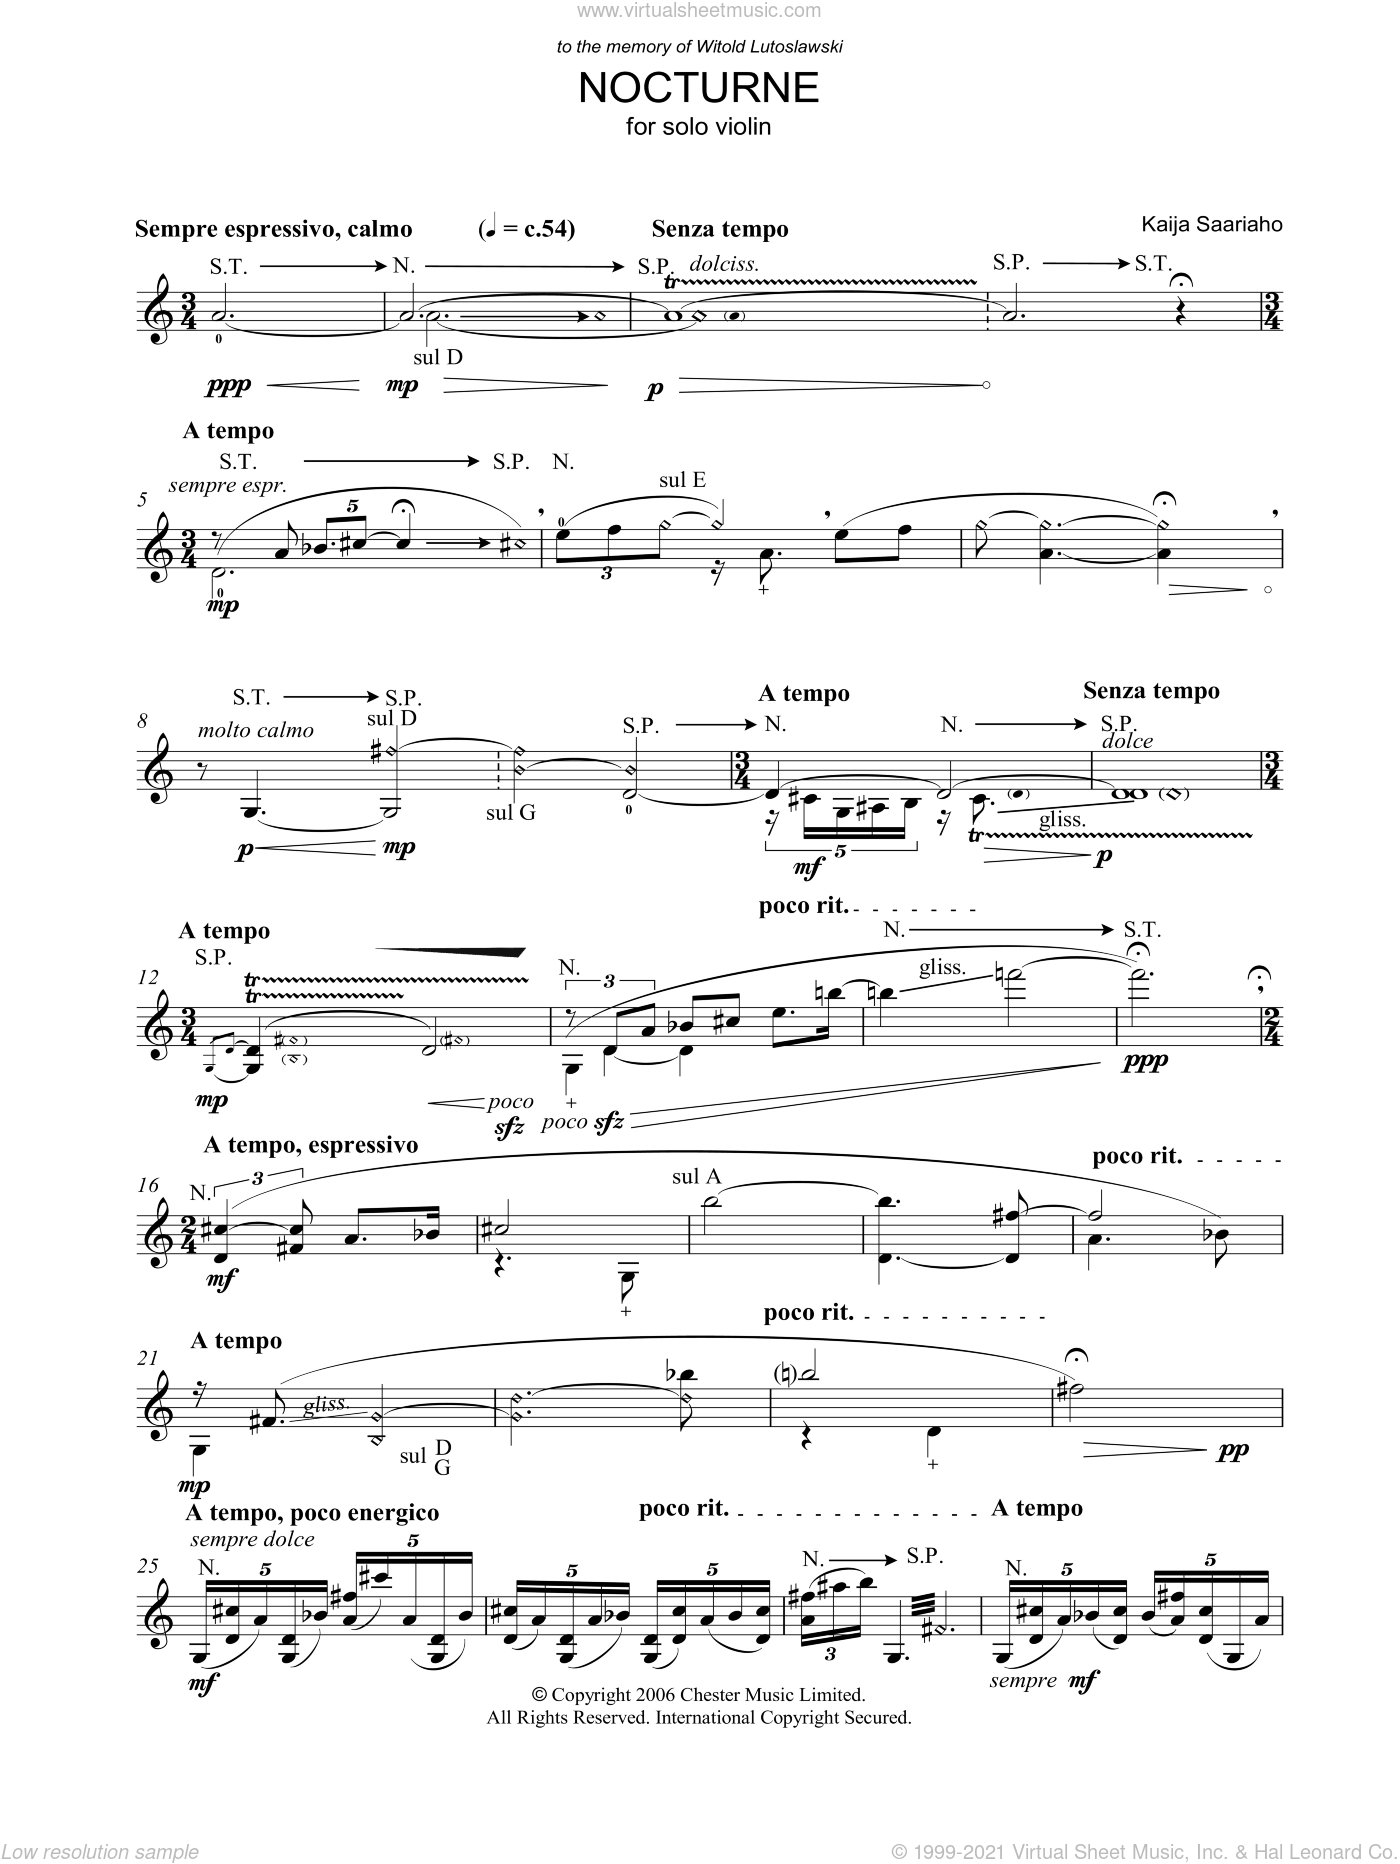 Nocturne (for Solo Violin) sheet music for voice, piano or guitar by Kaija Saariaho